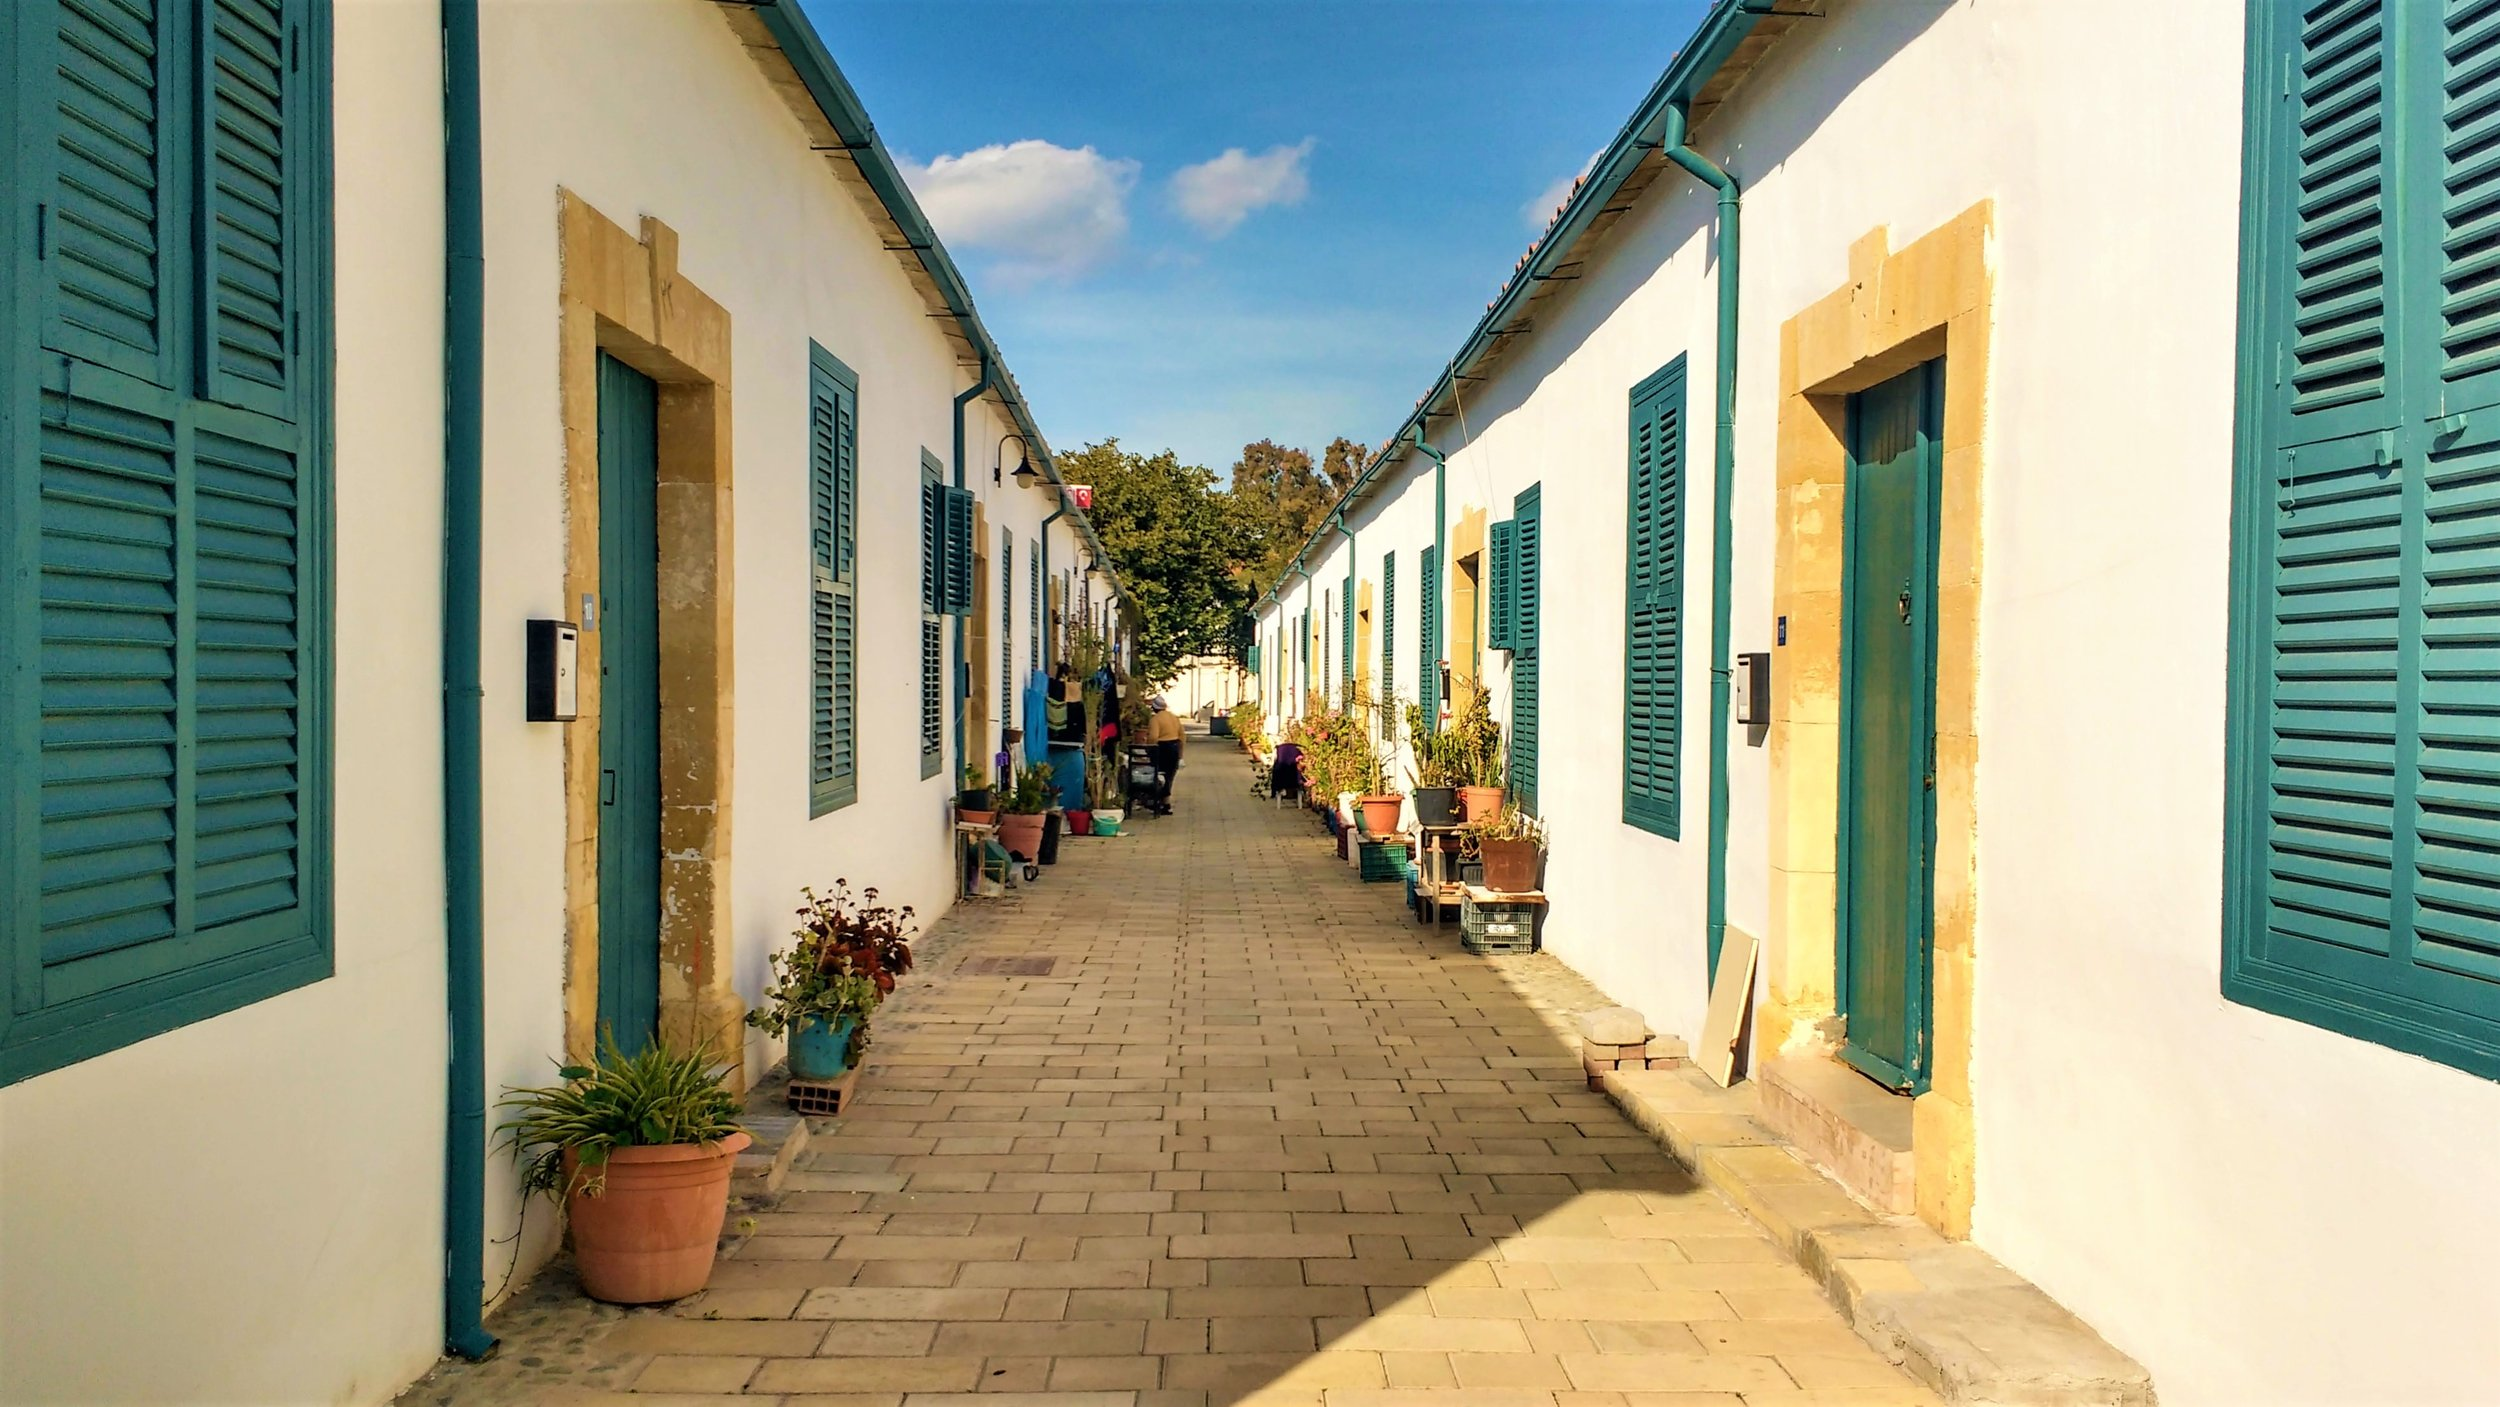 Wander the streets of Nicosia, one of the best things to do in northern Cyprus!